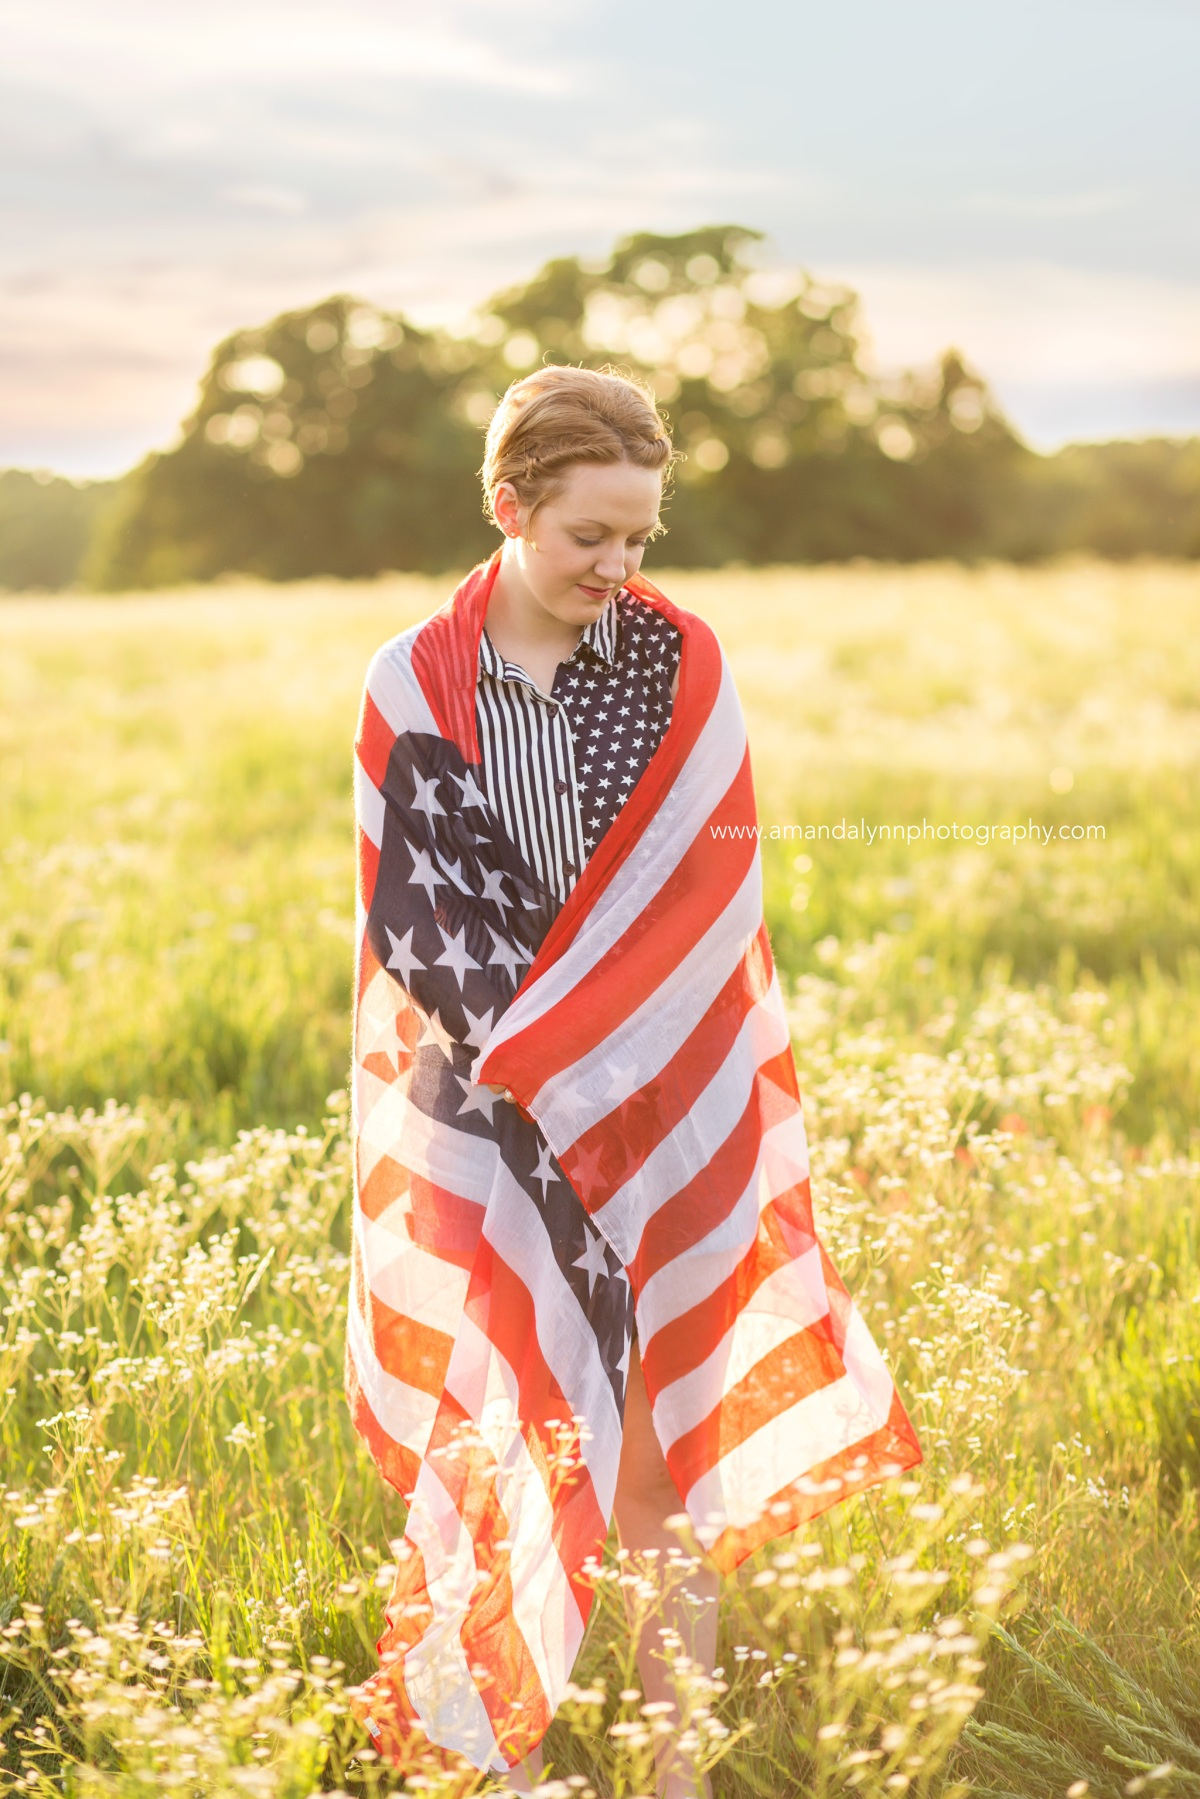 2017 Senior Rep for Amanda Lynn Photography Oklahoma City standing in a field of flowers with the American flag